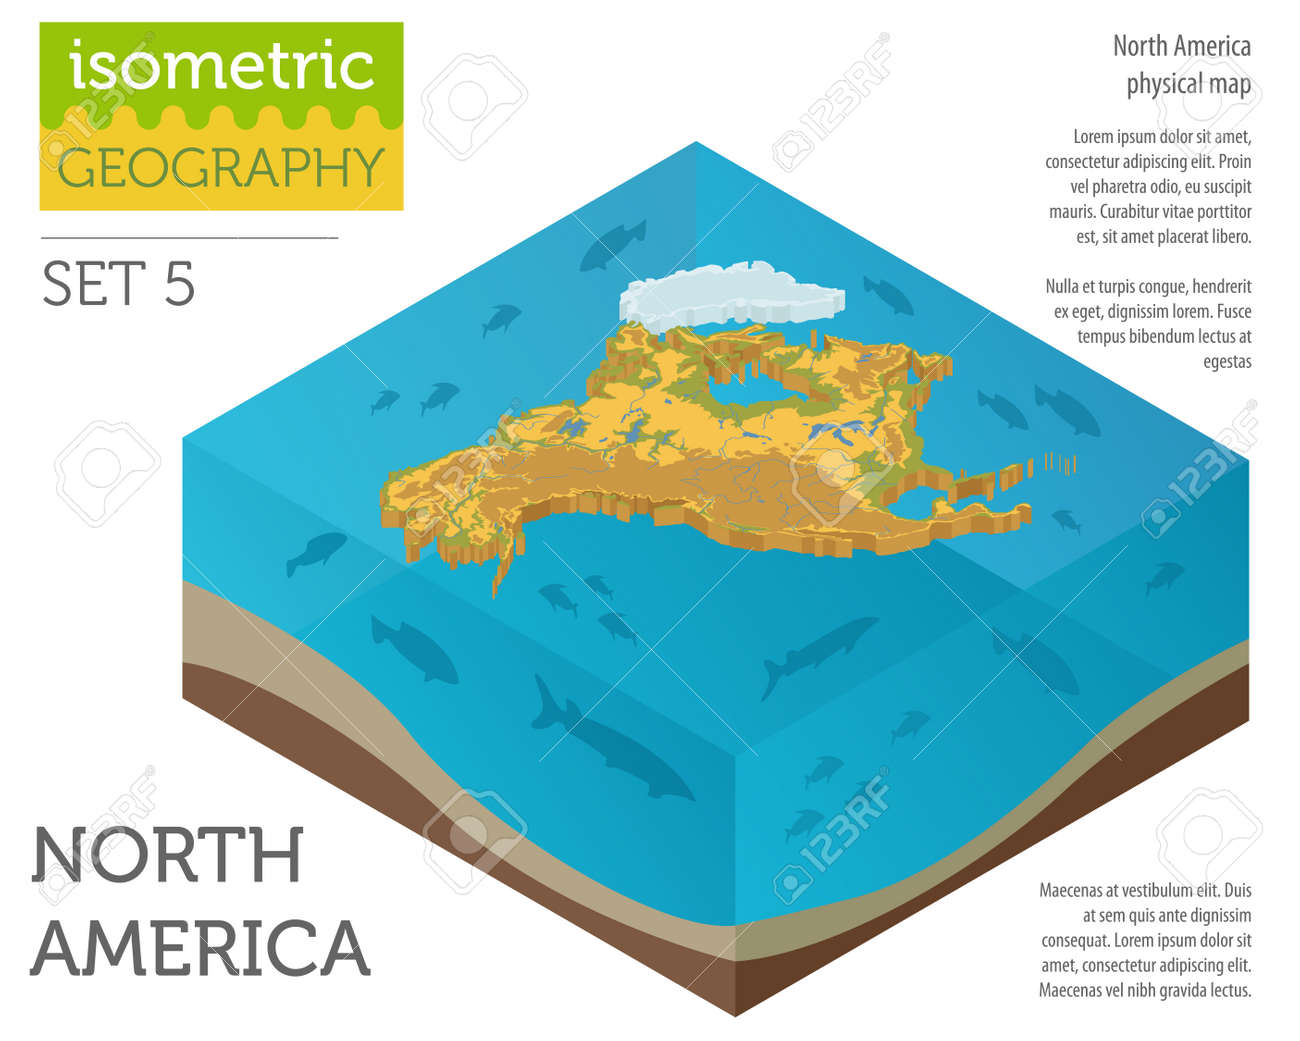 Isometric 3d North America physical map elements. Build your..